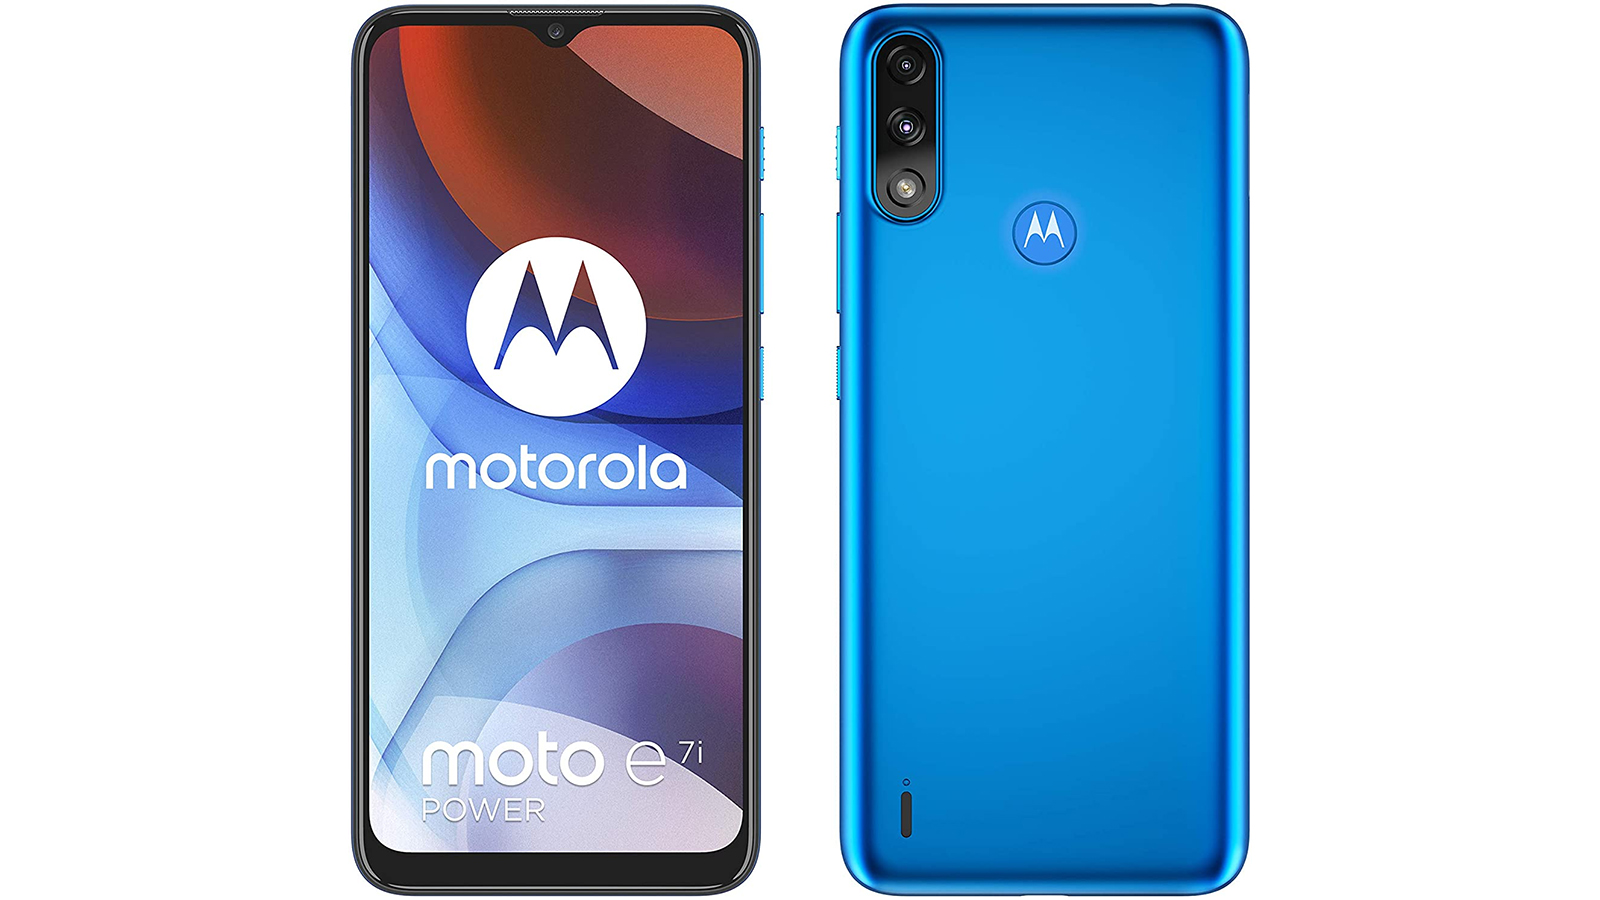 The Moto E7i Power shown from the front and back